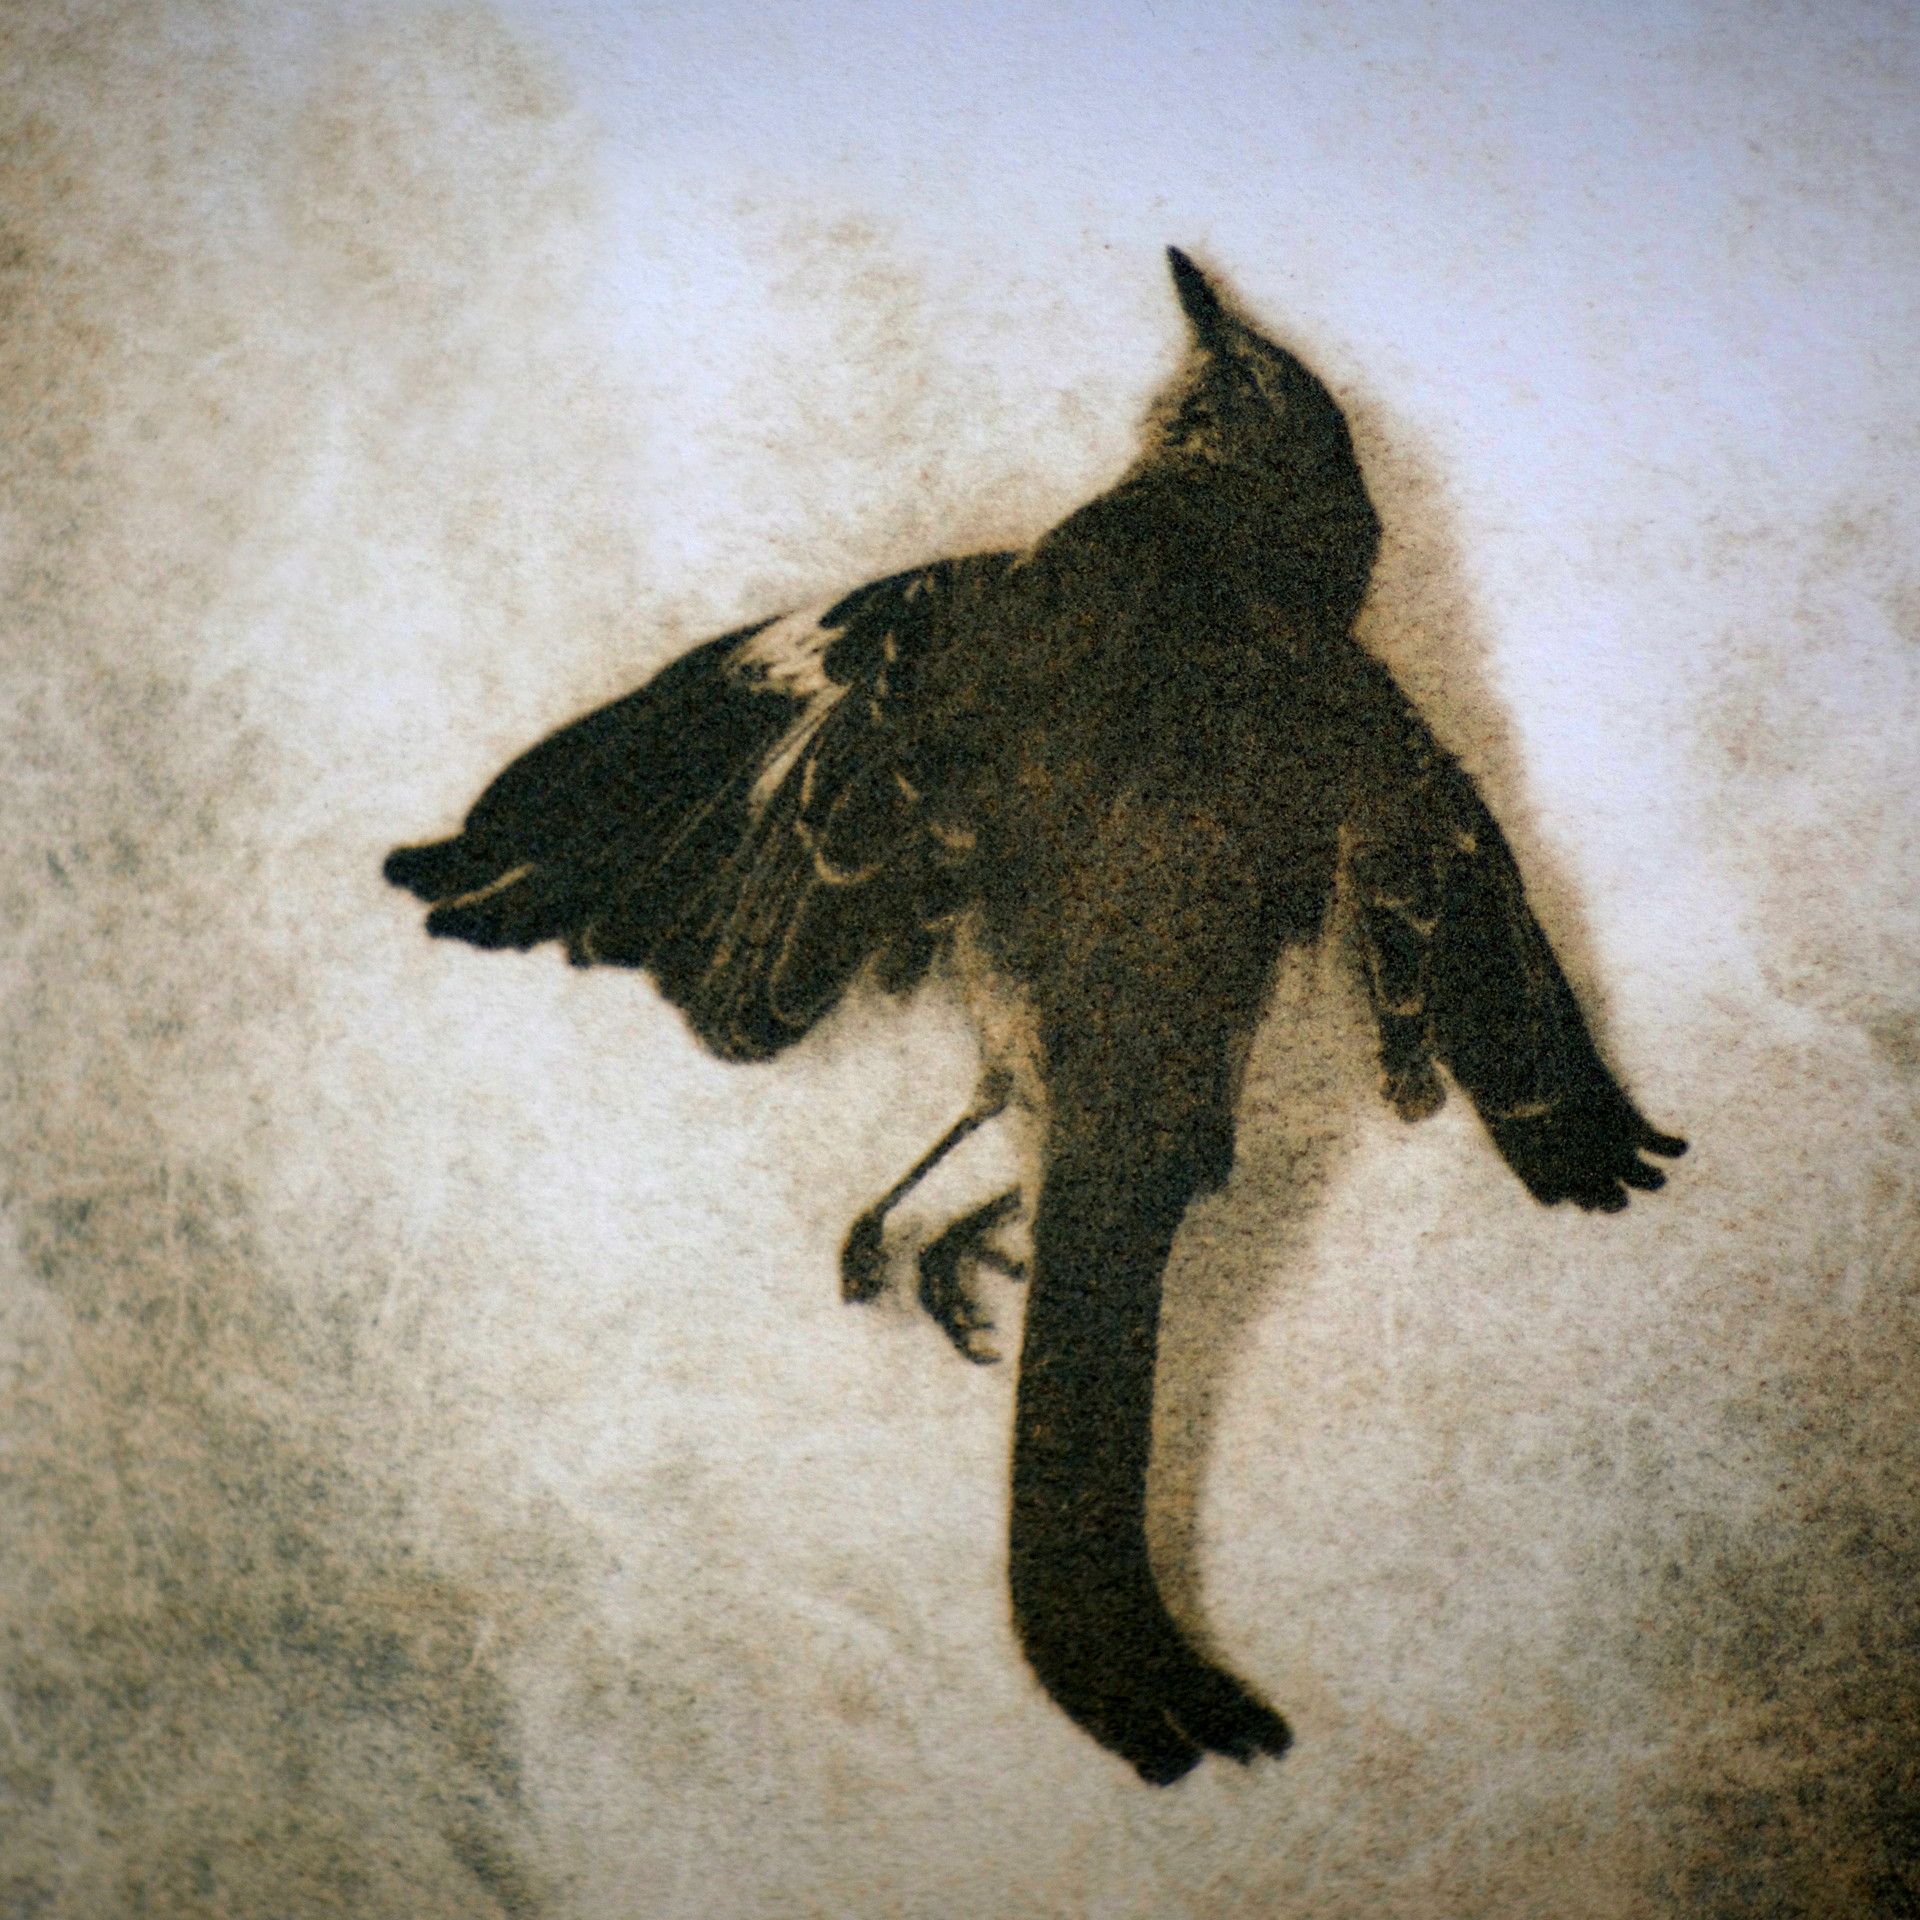 WAXWING V,   from the  Still Lives  Series.  Tri-color gum bichromate.  Limited edition 2/10